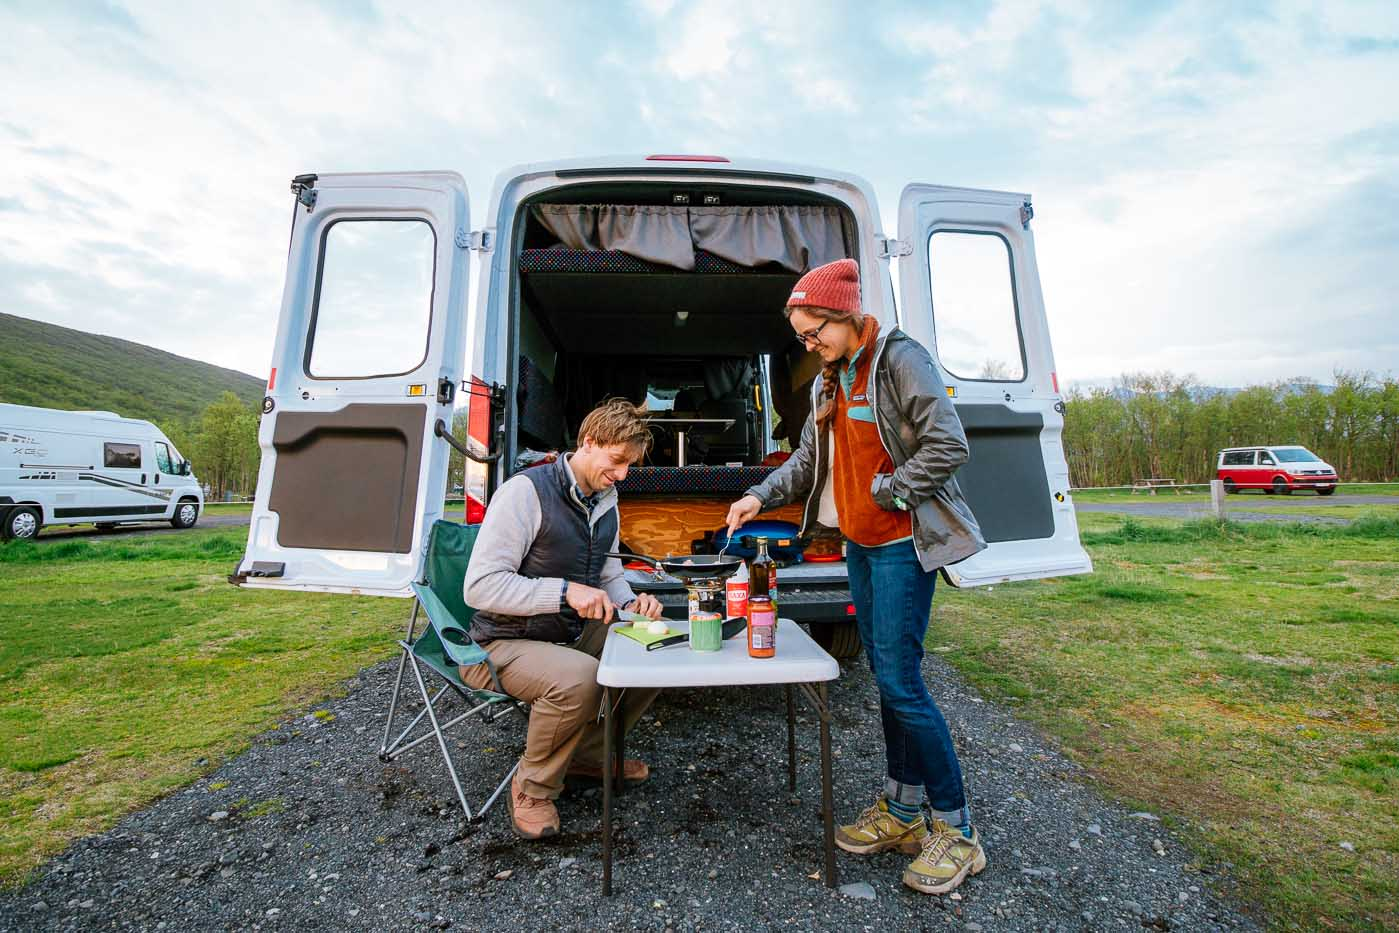 A couple cooking in front of a camper van